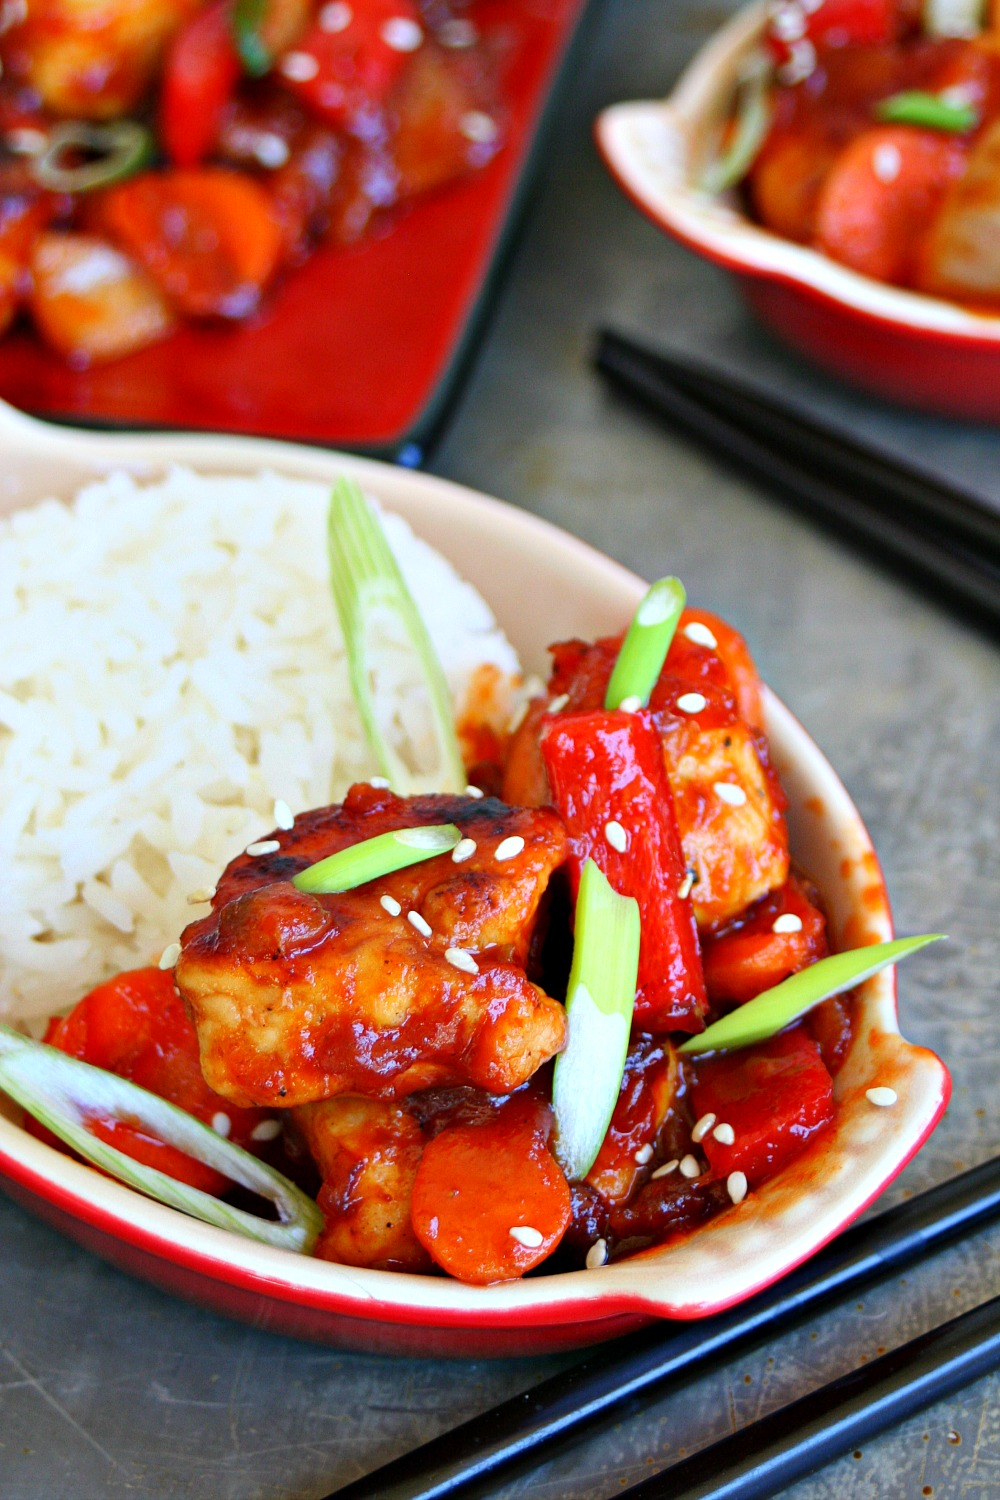 pork recipe sweet and sour pork video sweet and sour pork iii ...